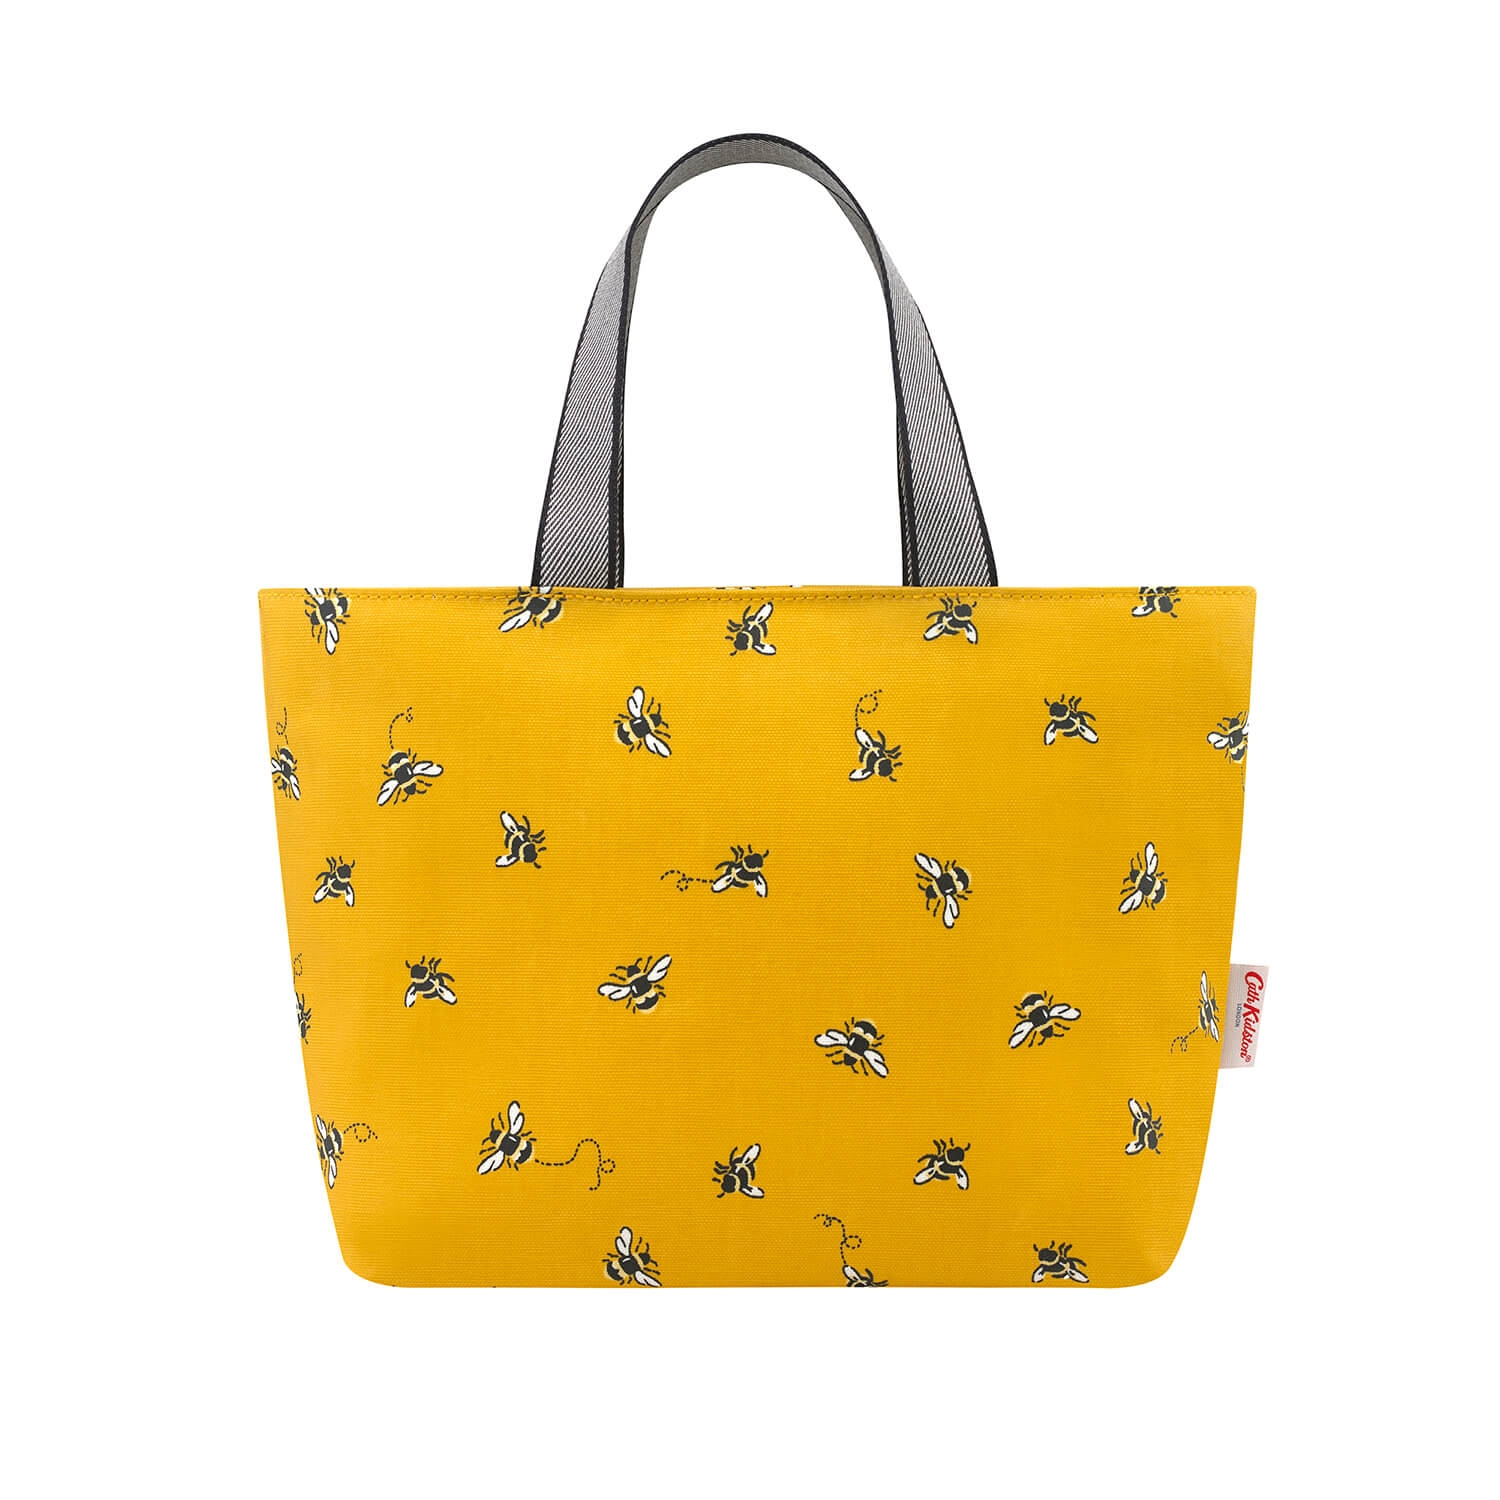 Image of Cath Kidston, Bee, Lunch Tote, Yellow